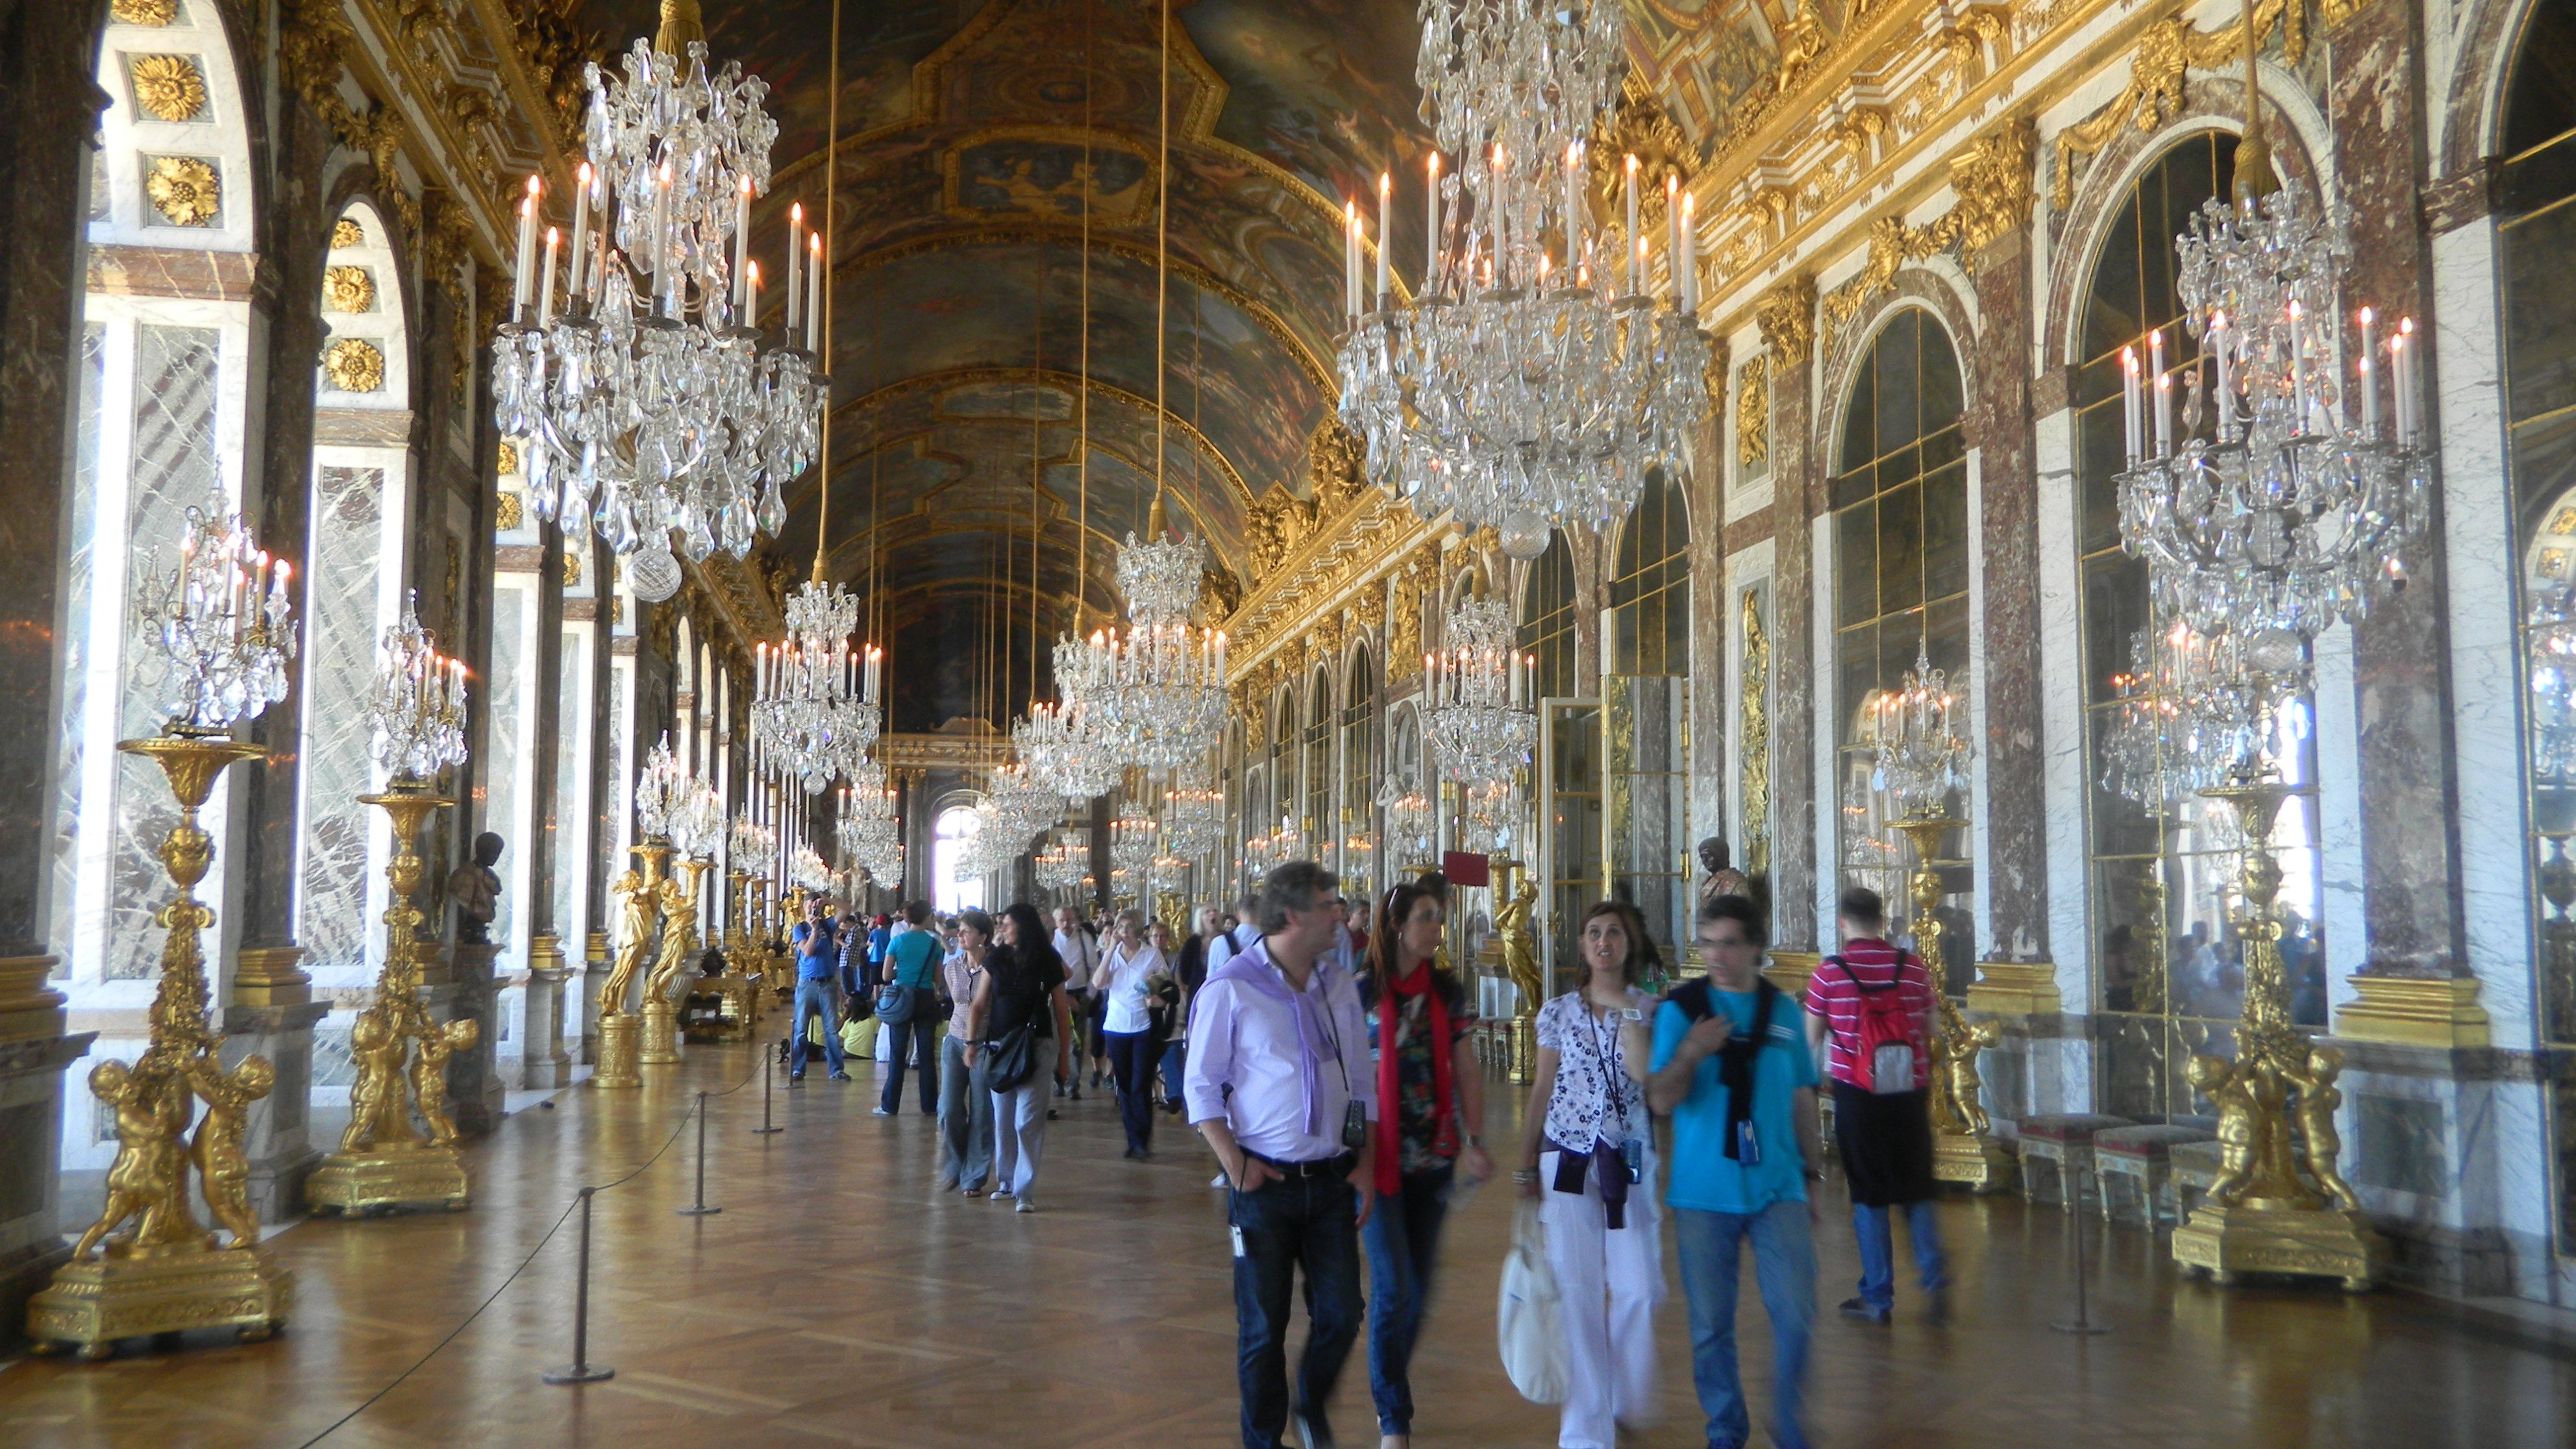 The hall of mirrors at versailles no room full of mirrors the hall of mirrors at versailles no room full of mirrors chandeliers and aloadofball Gallery